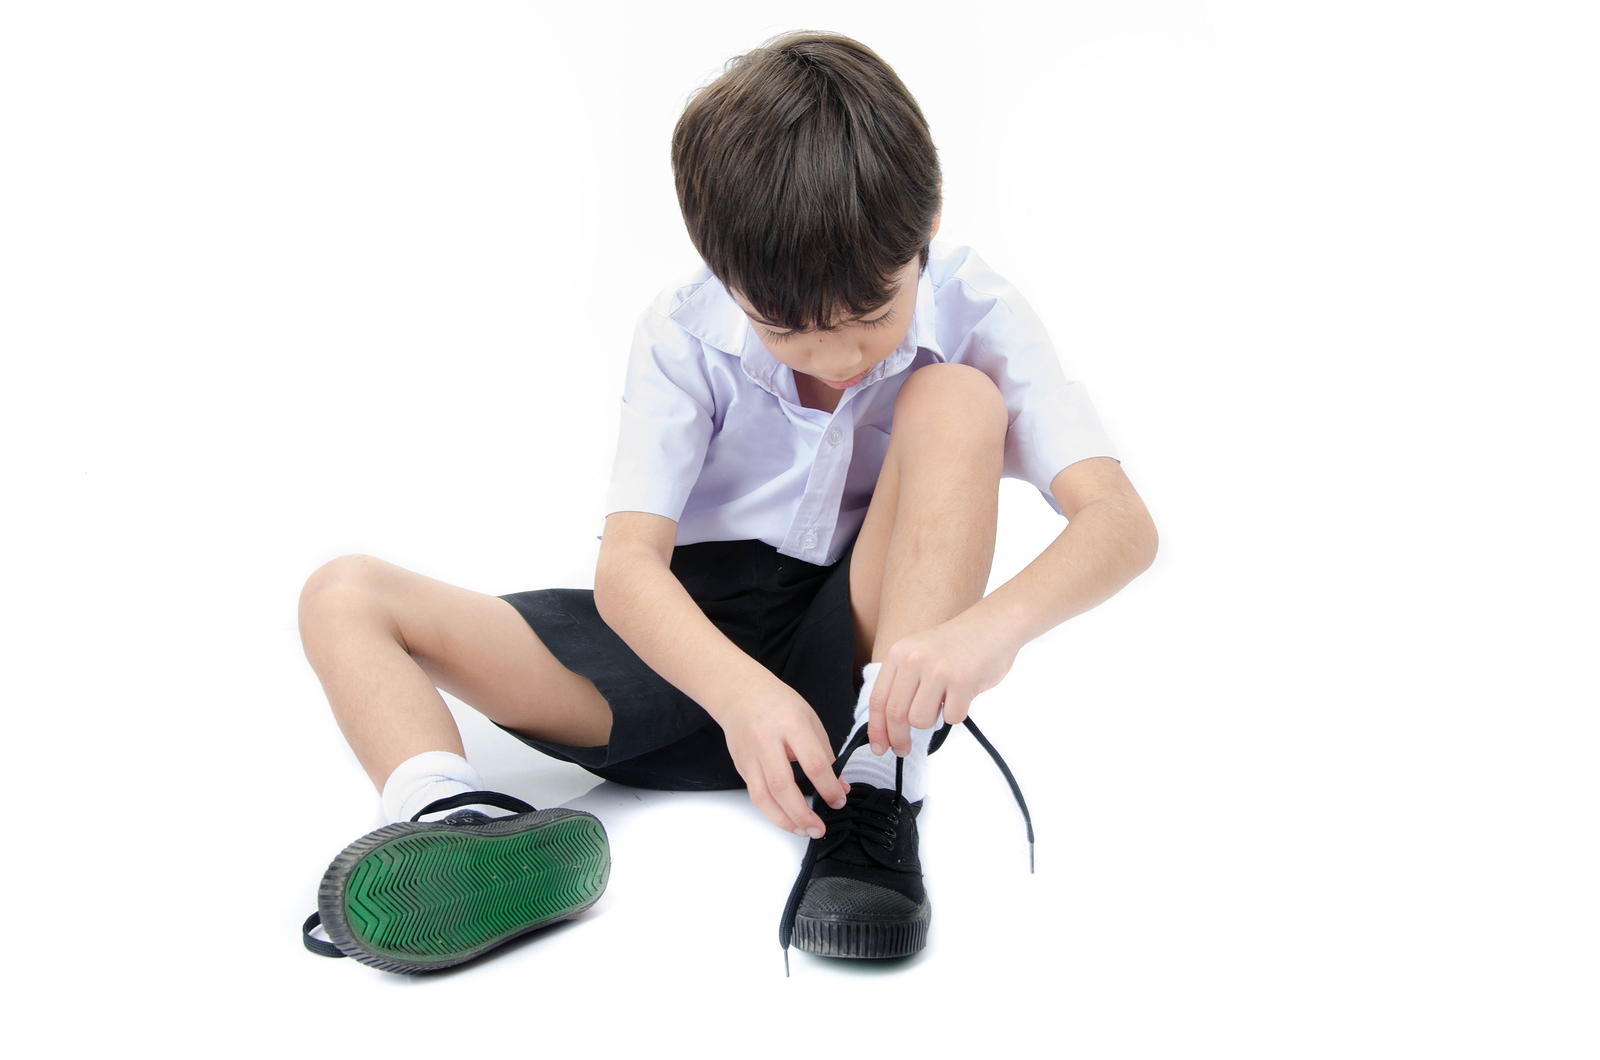 Little boy tie shoes ready for school on white background